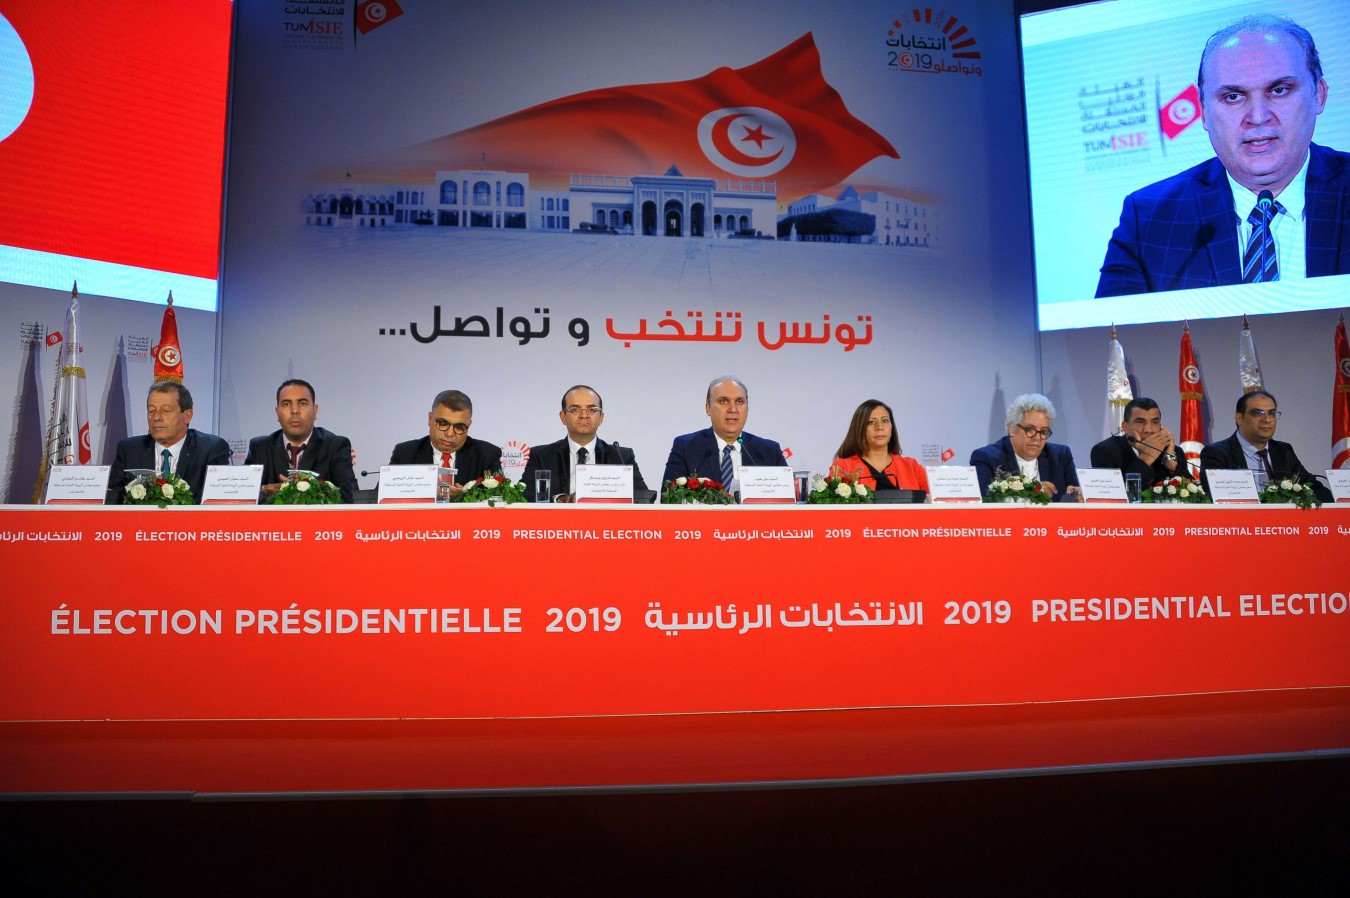 Nabil Baffoun (C), President of the Independent High Authority for Elections(ISIE), announces the official results of the presidential election, September 17. (dpa)